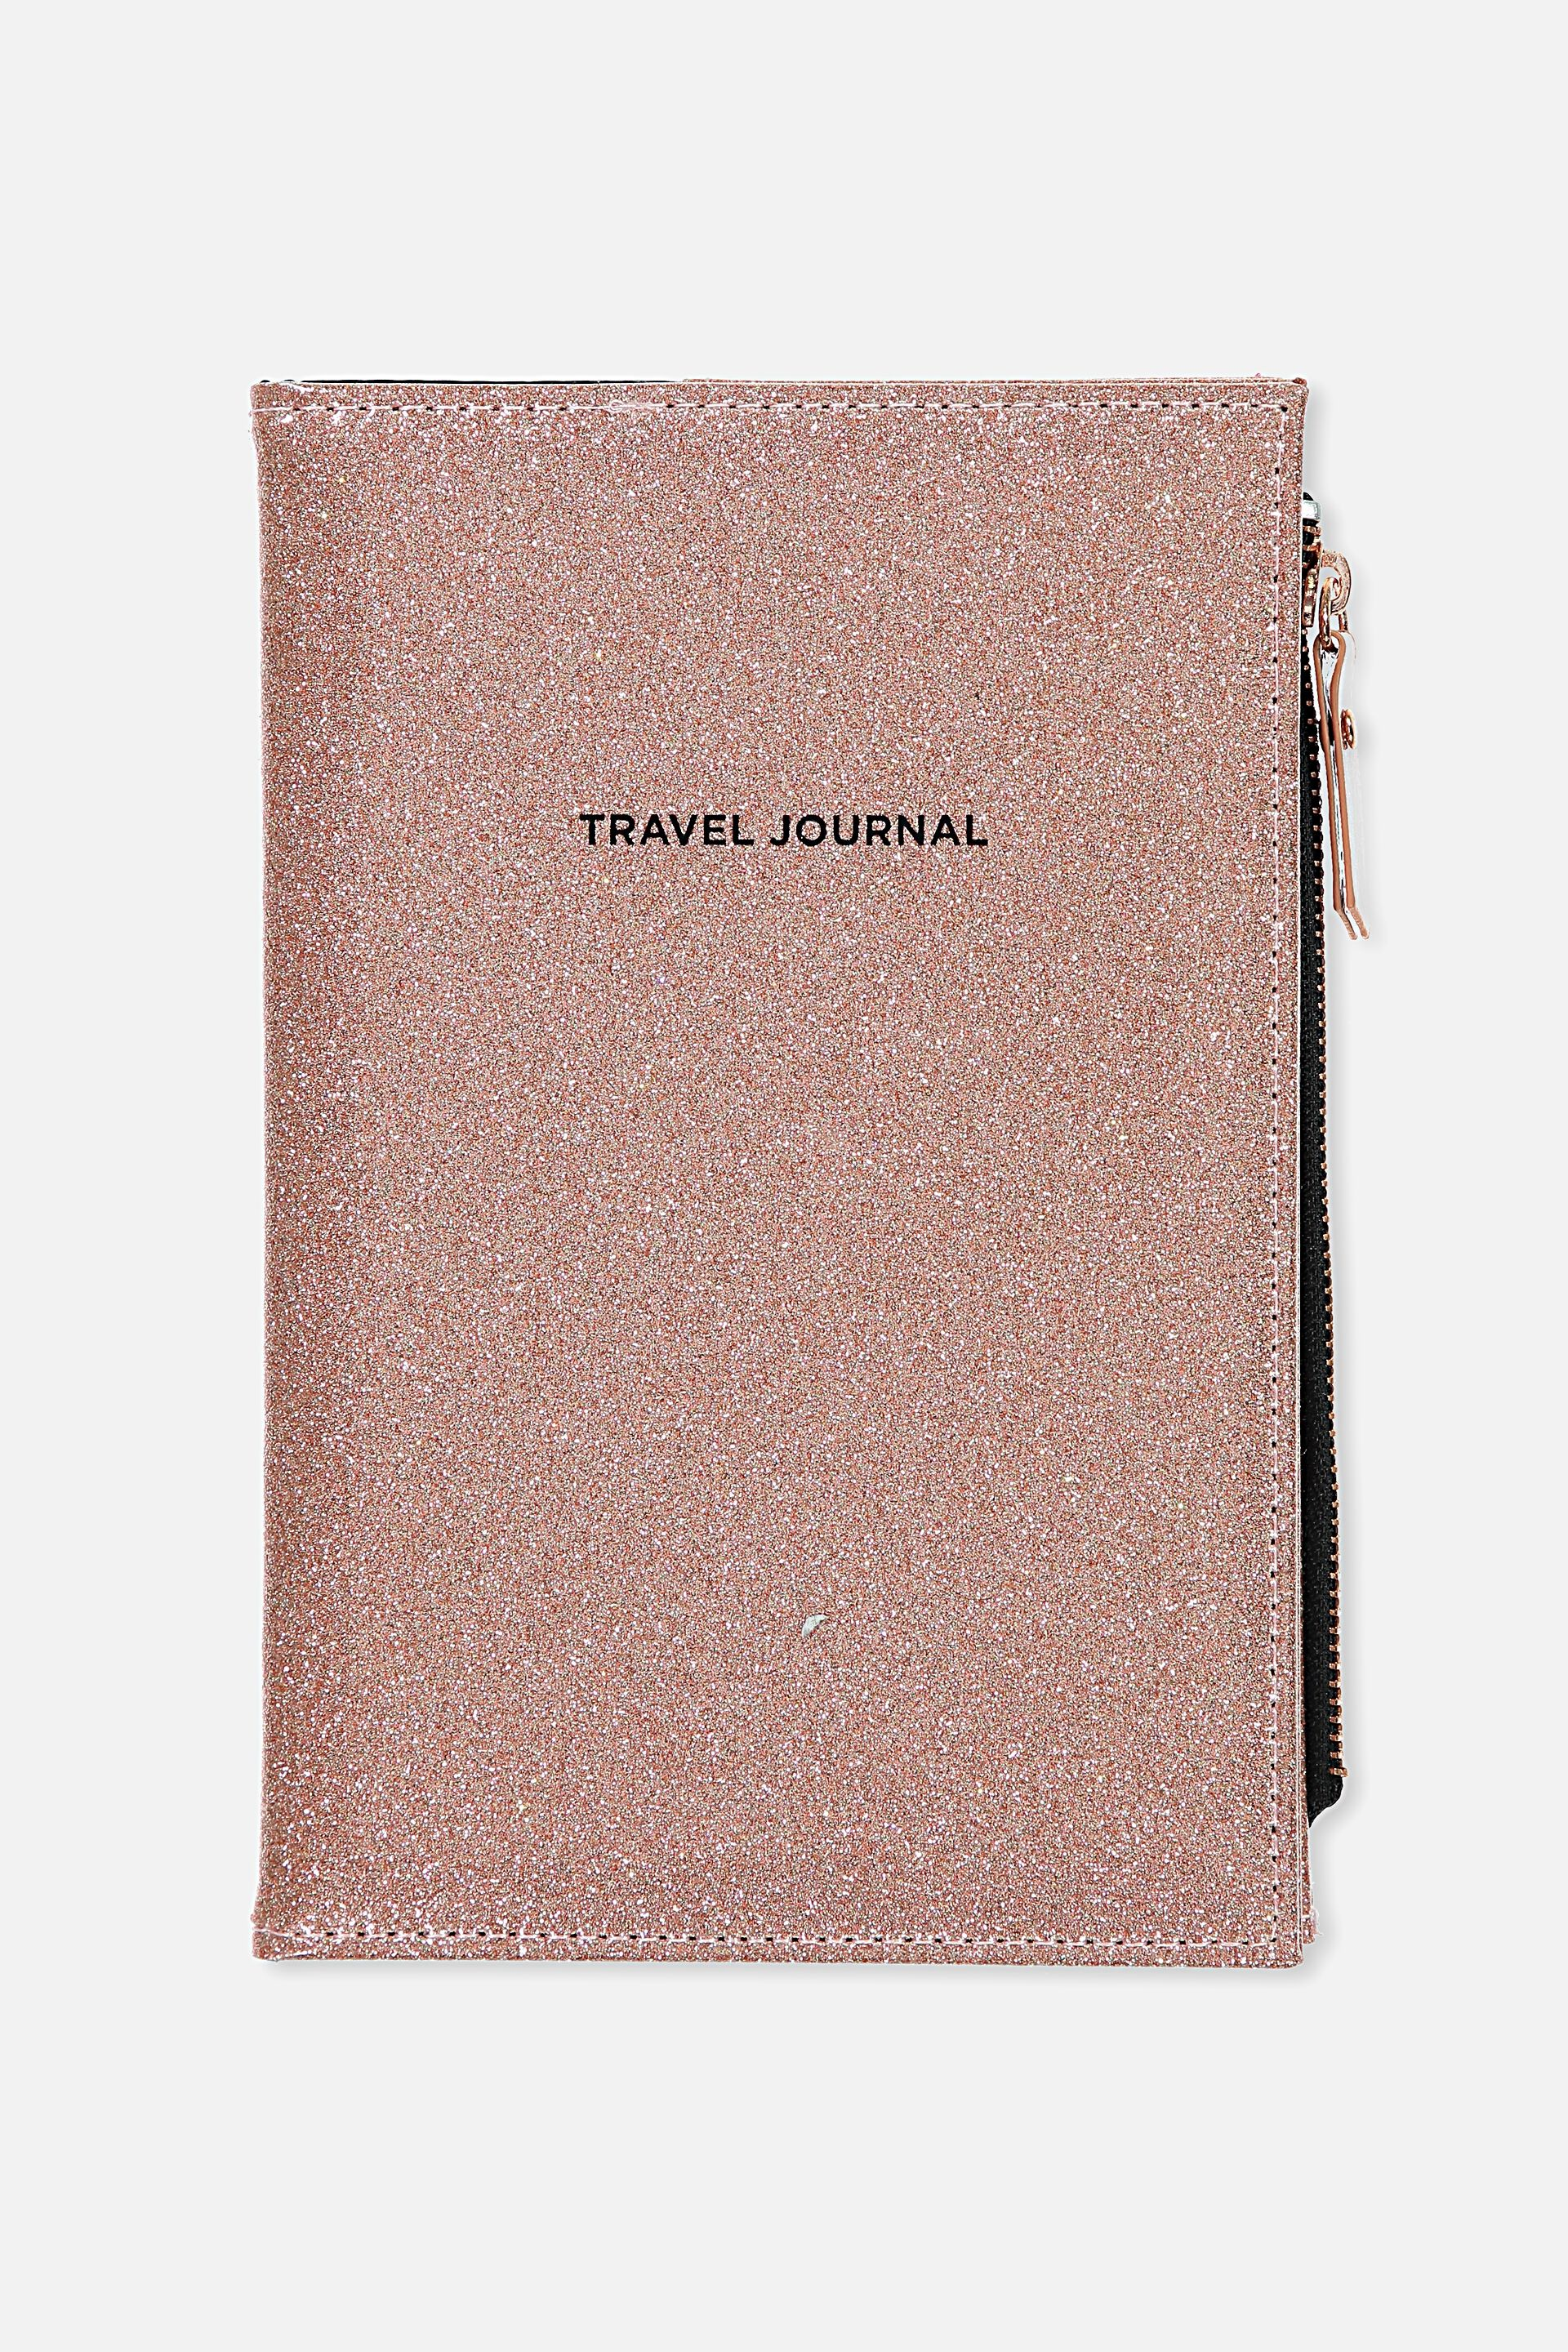 personal journals for sale